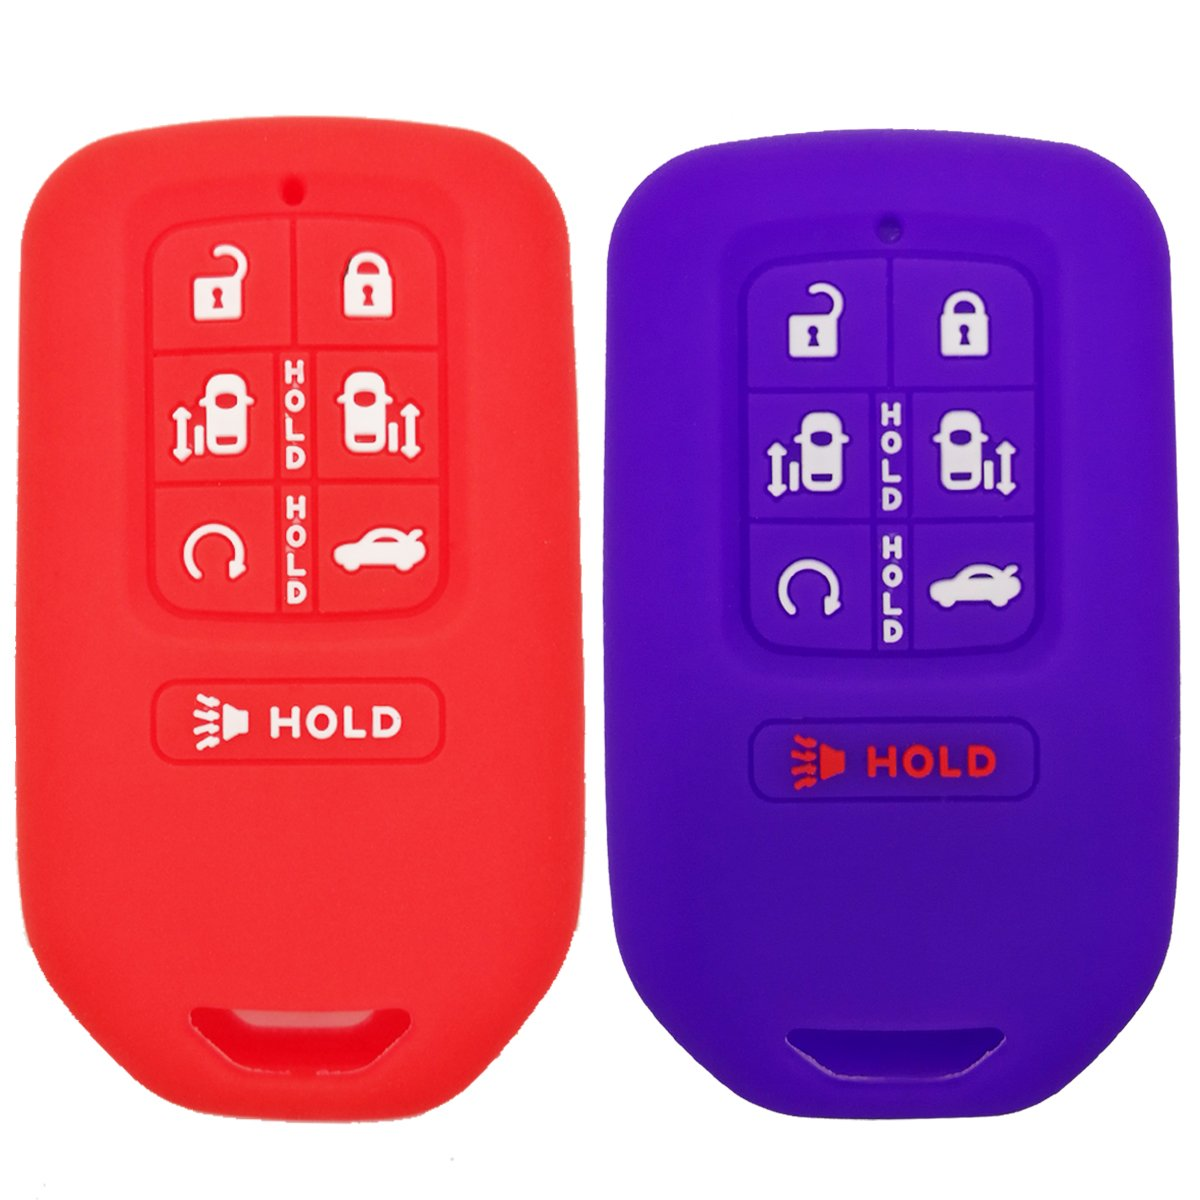 2Pcs Coolbestda Rubber Smart 7 Buttons Key Fob Remote Cover Protector Keyless Entry Holder for 2018 Honda Odyssey elite ex by Coolbestda (Image #1)